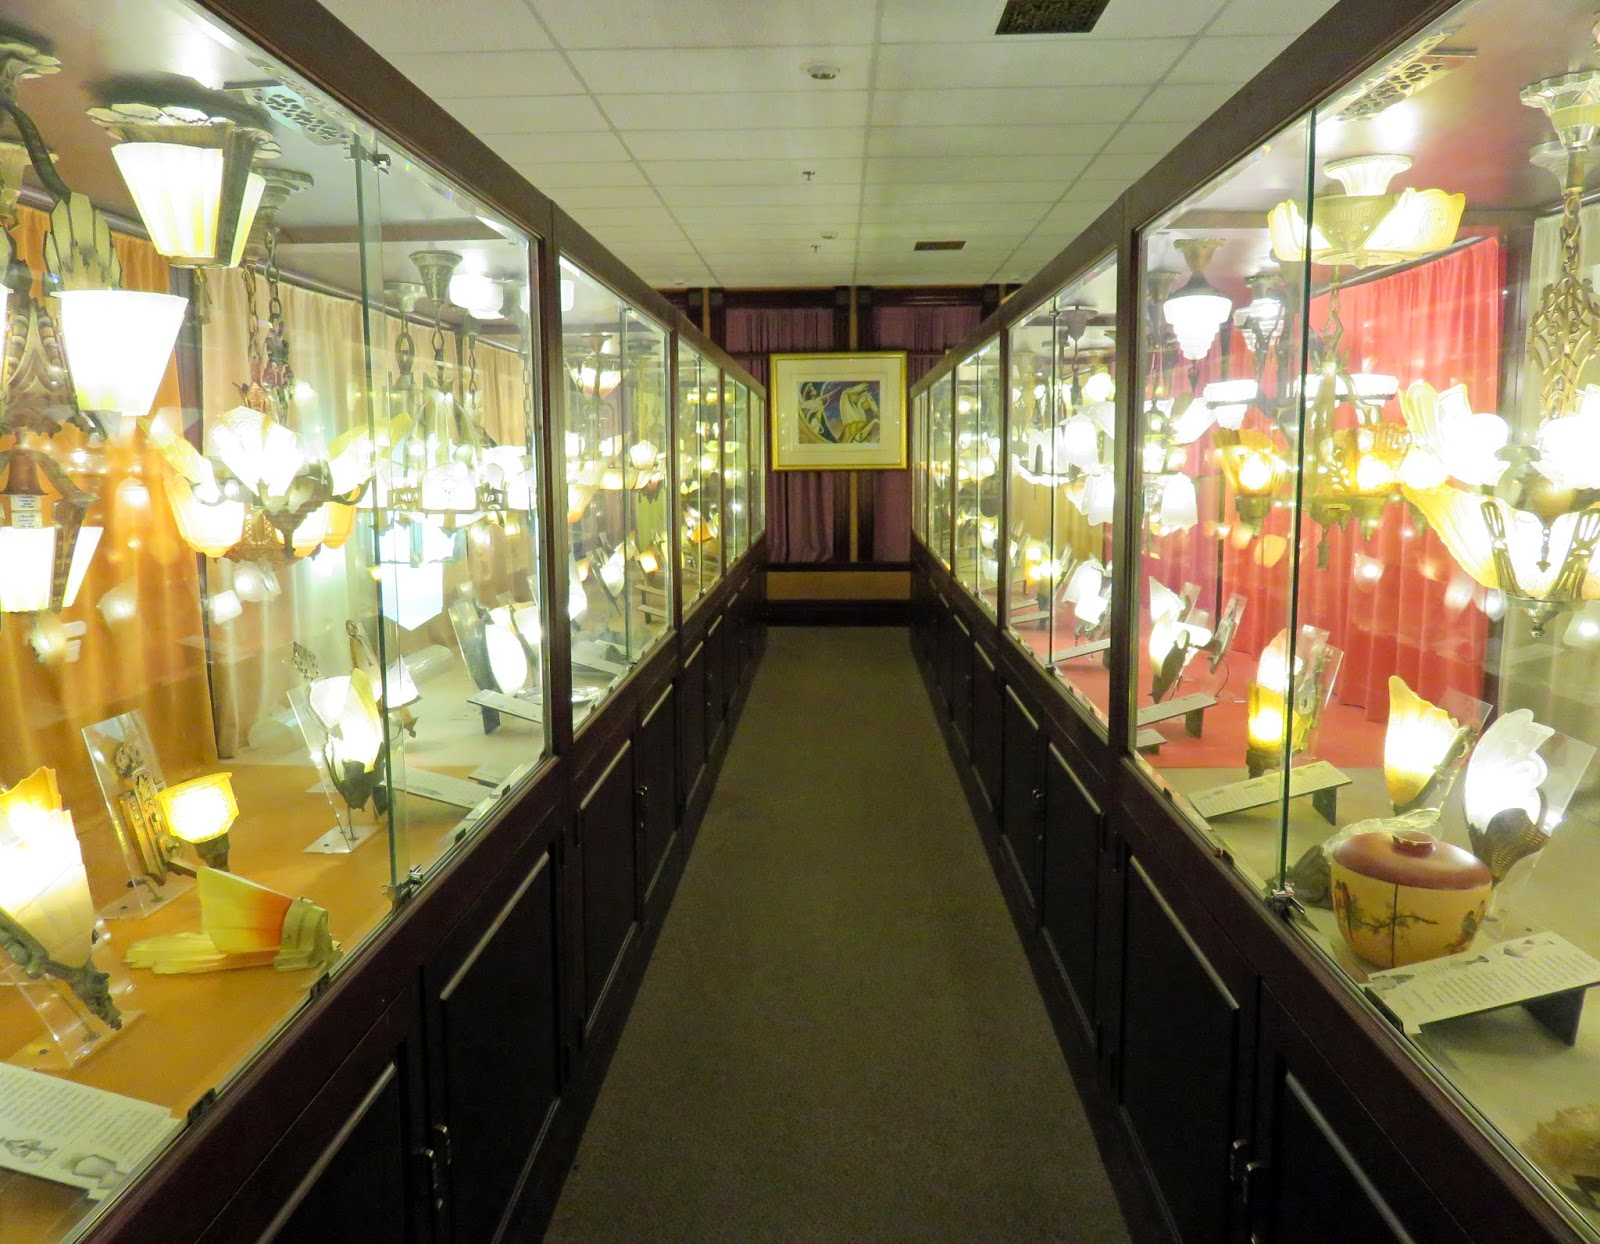 The daily rant visually artistic lighting several rows of display cases displayed lighting fixtures from the great depression years of 1928 to 1938 their promotional flyer for the museum states arubaitofo Choice Image